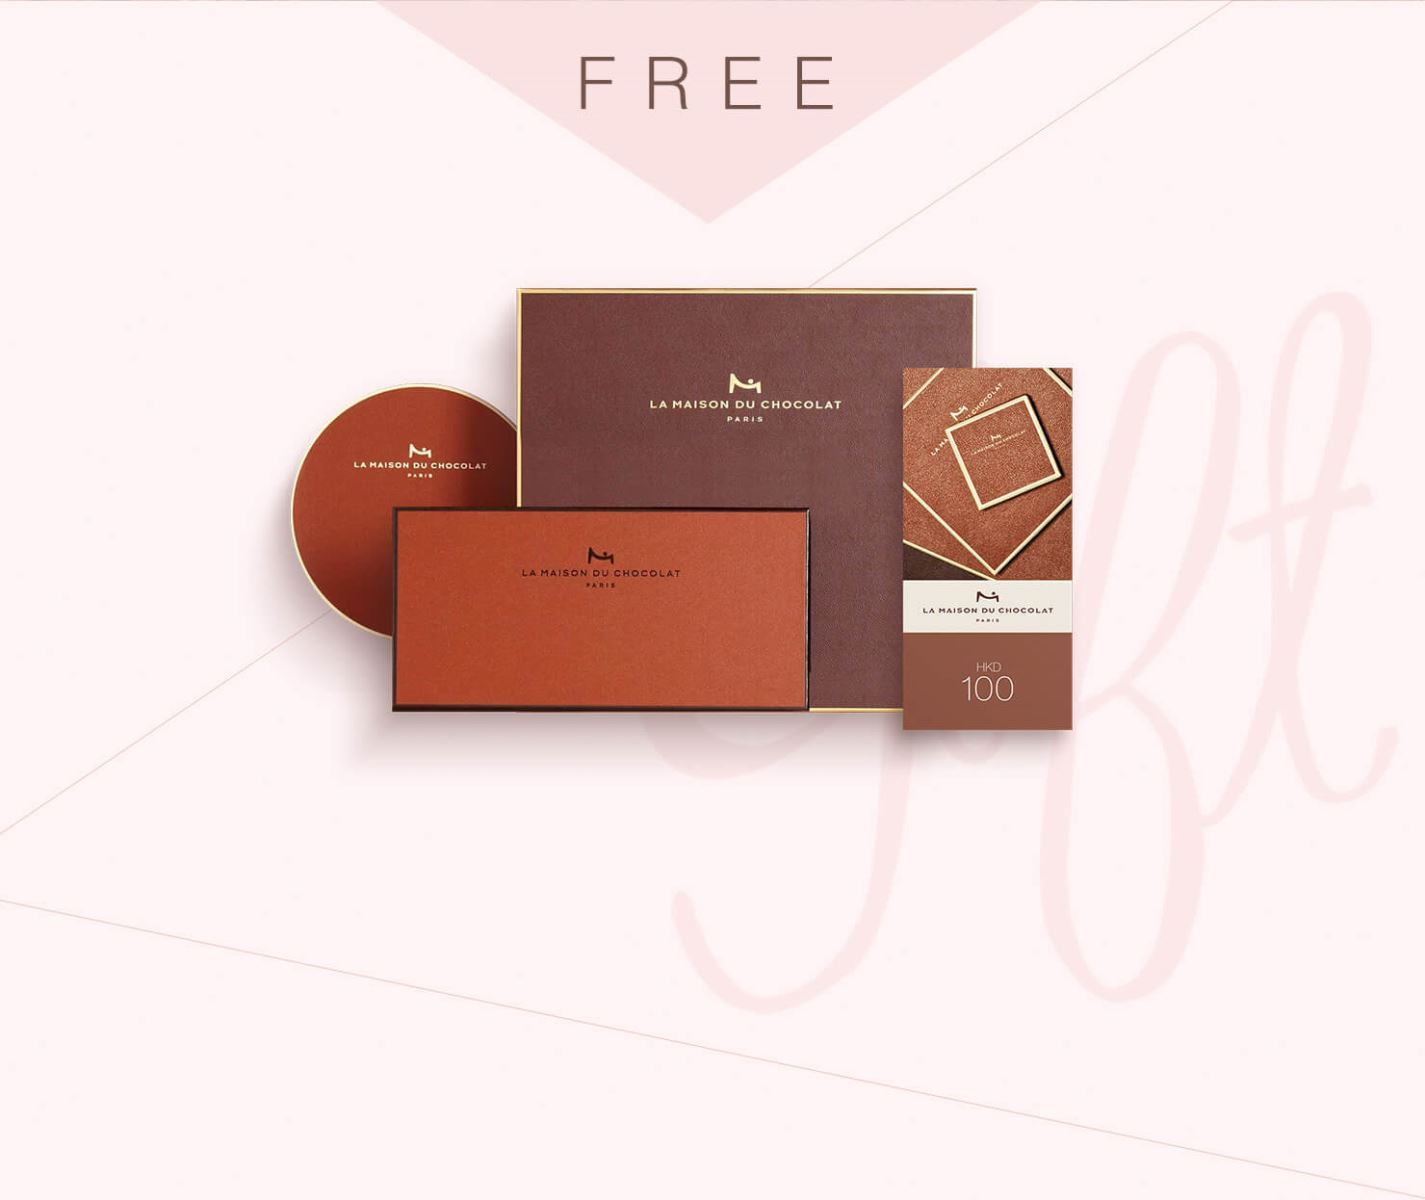 "Looking for a surprise gift? Receive a complimentary 'La Maison du Chocolat HK$100 Gift Voucher"" upon purchase of any item in this Collection! Explore the authentic taste of the French handmade chocolate and enjoy the sensational experience with your beloved one."